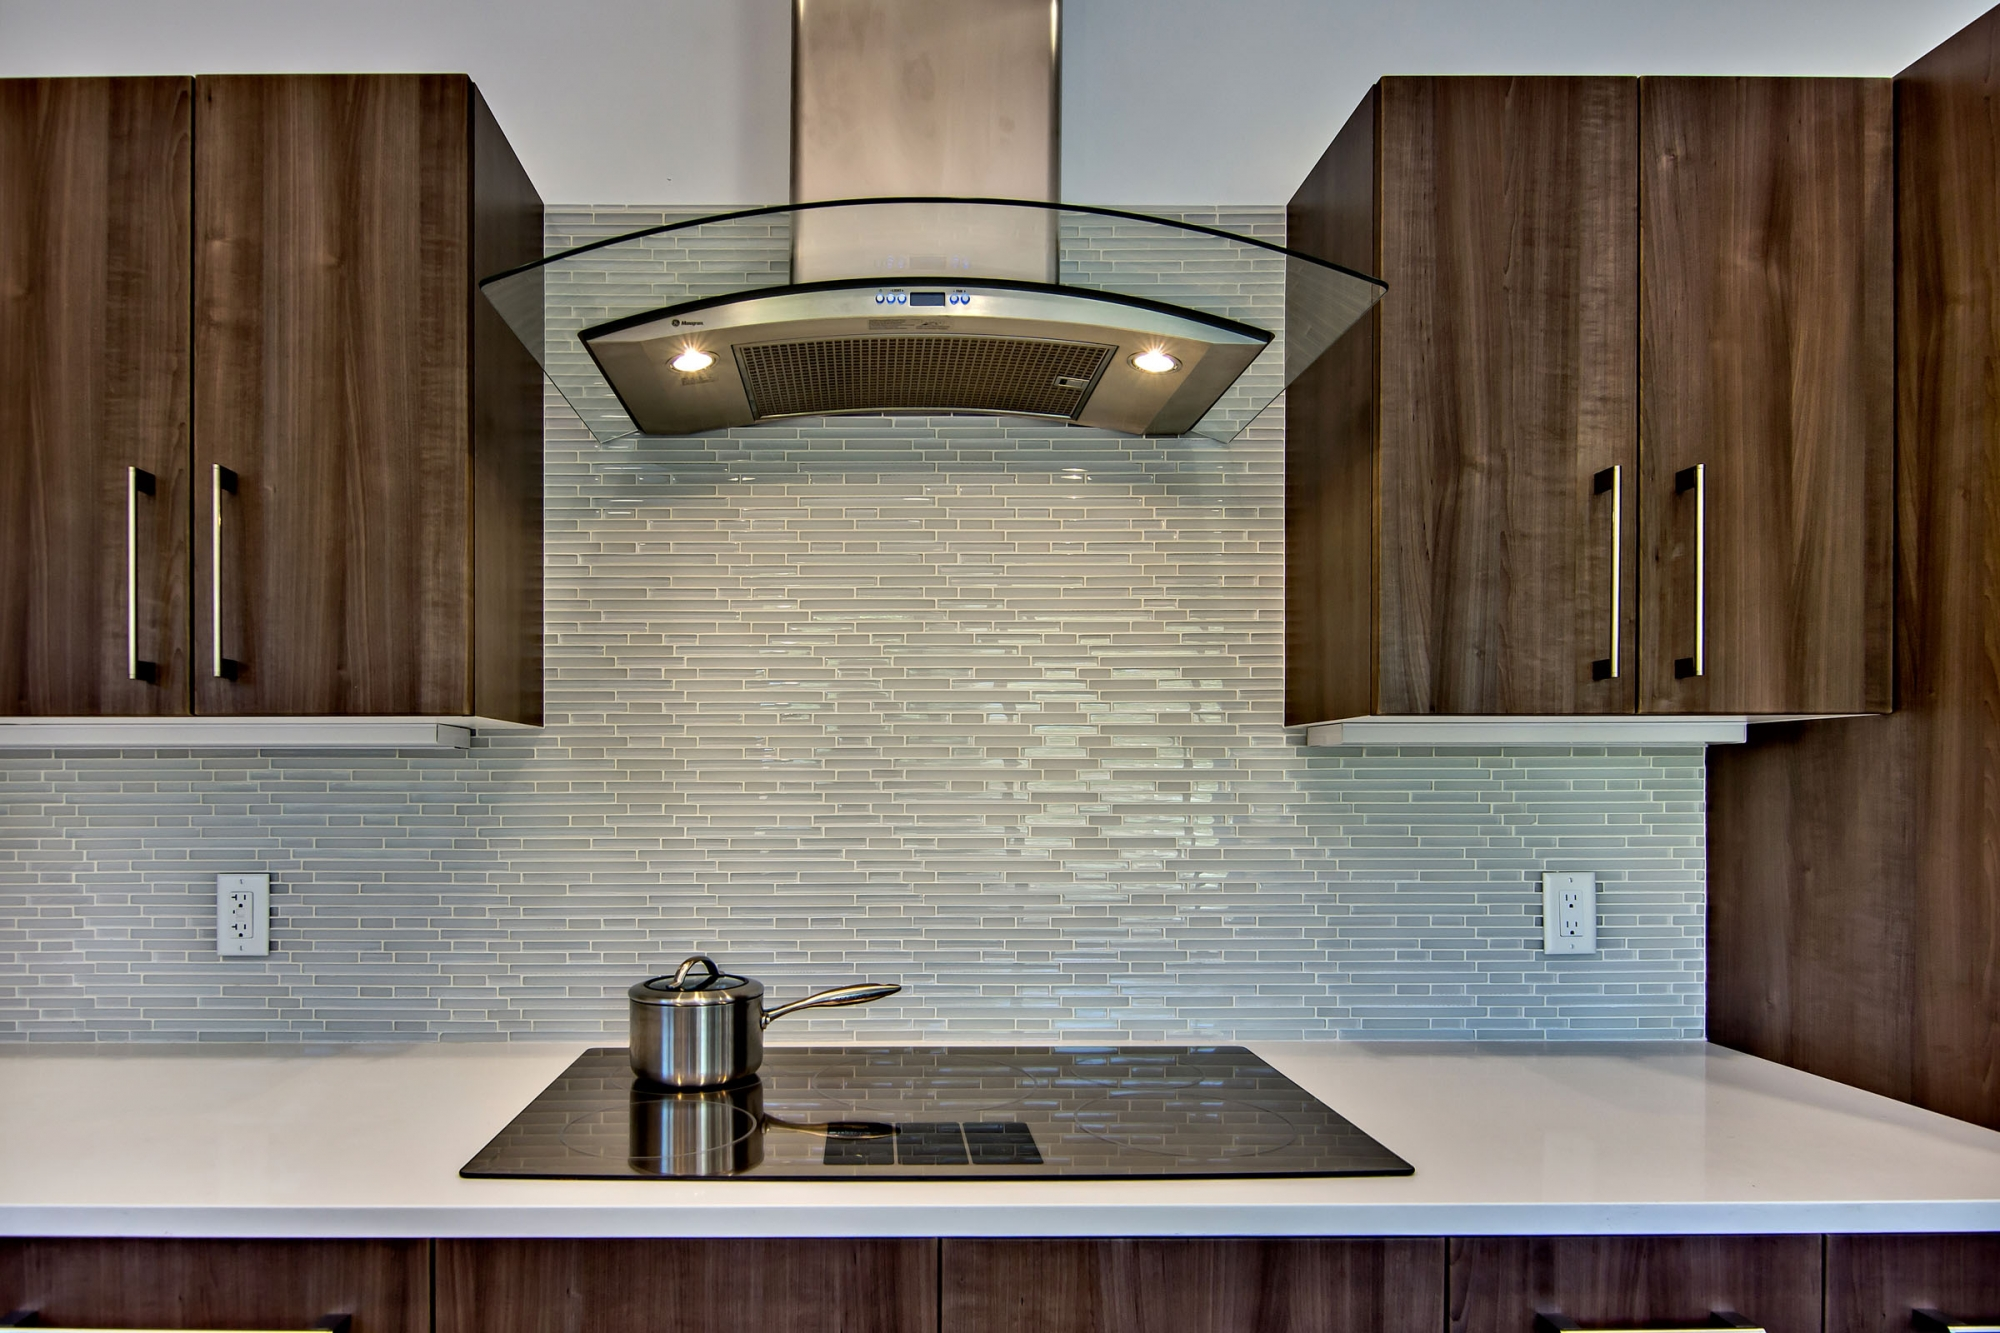 photos lovely glass backsplash kitchen important glass tile ocean backsplash kitchen subway tile outlet